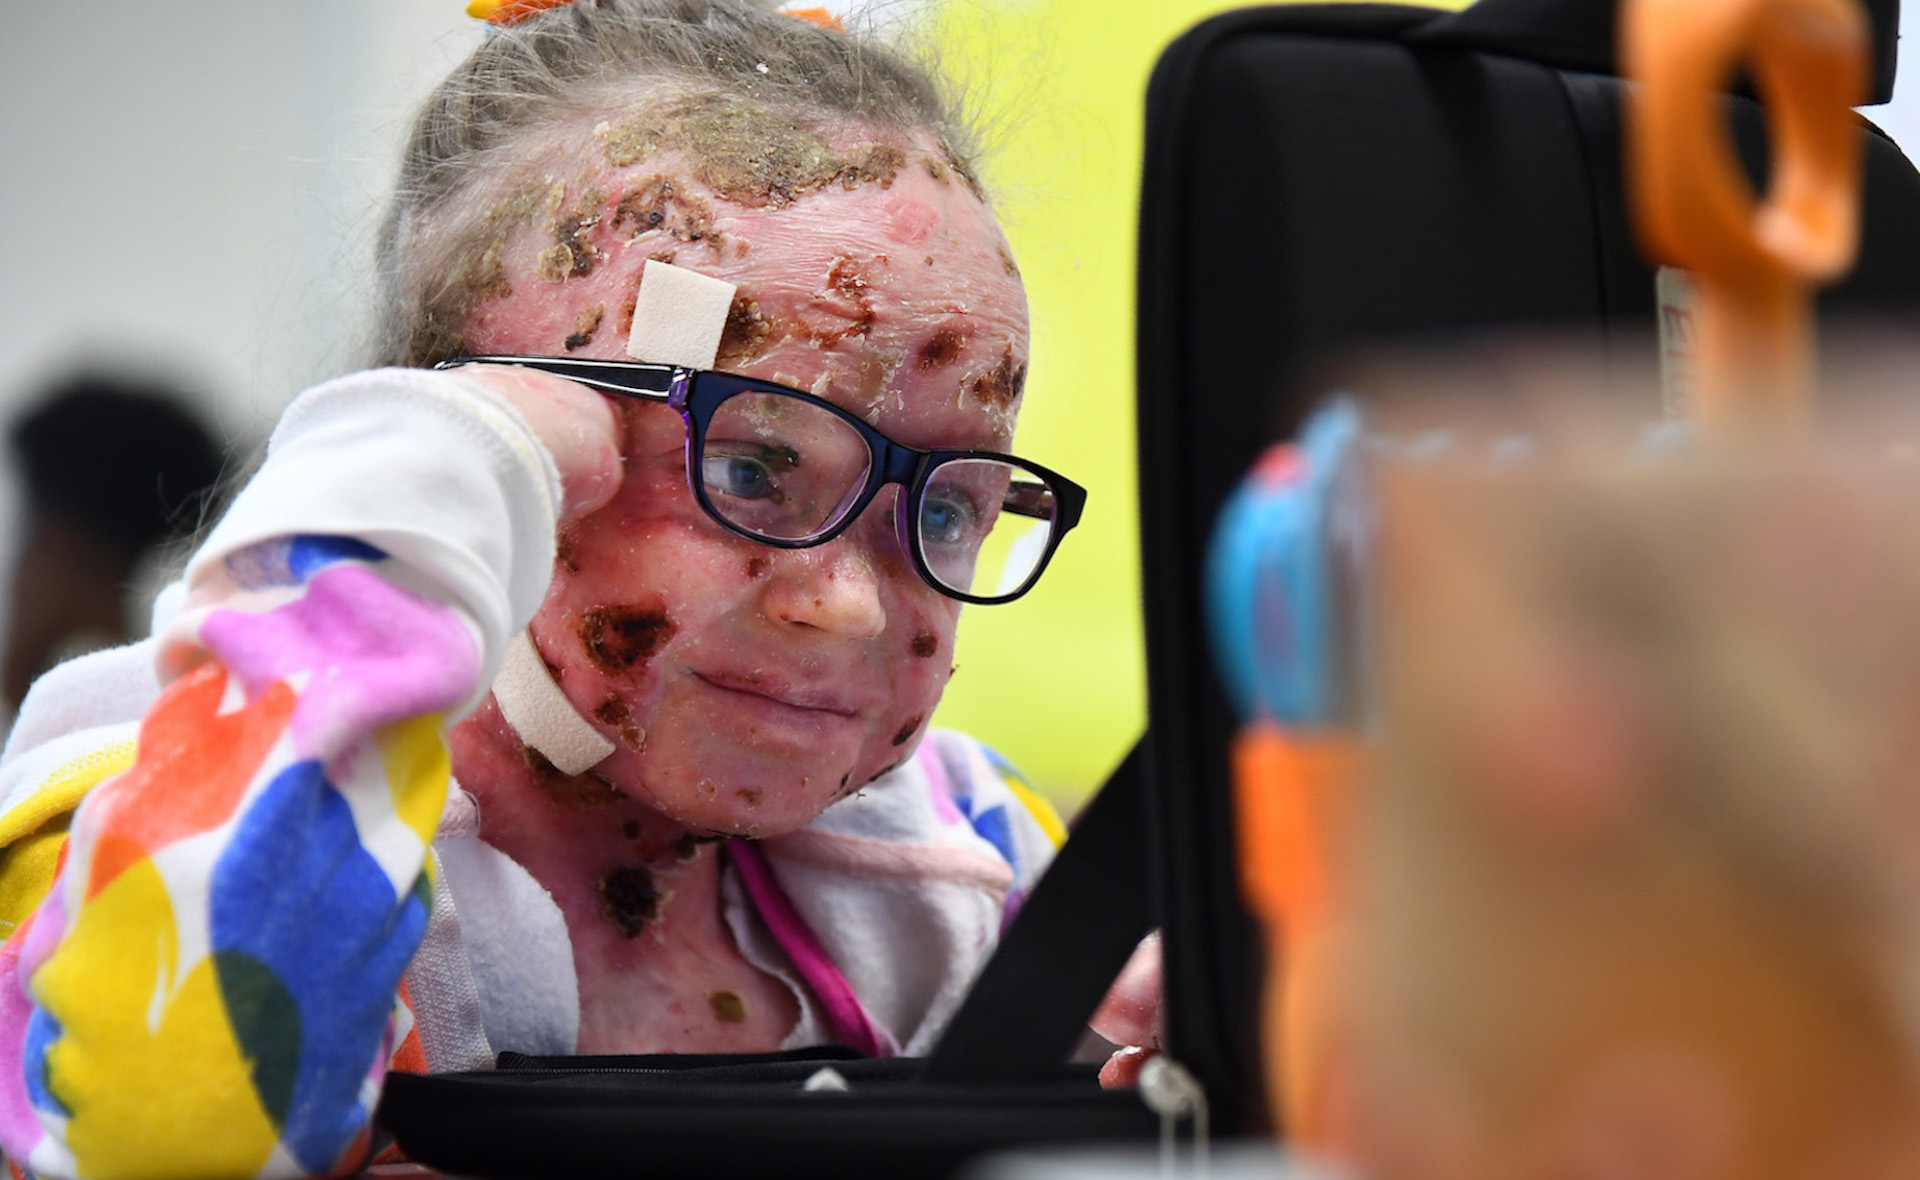 a baby girl a baffling disease and the only way to help her is to